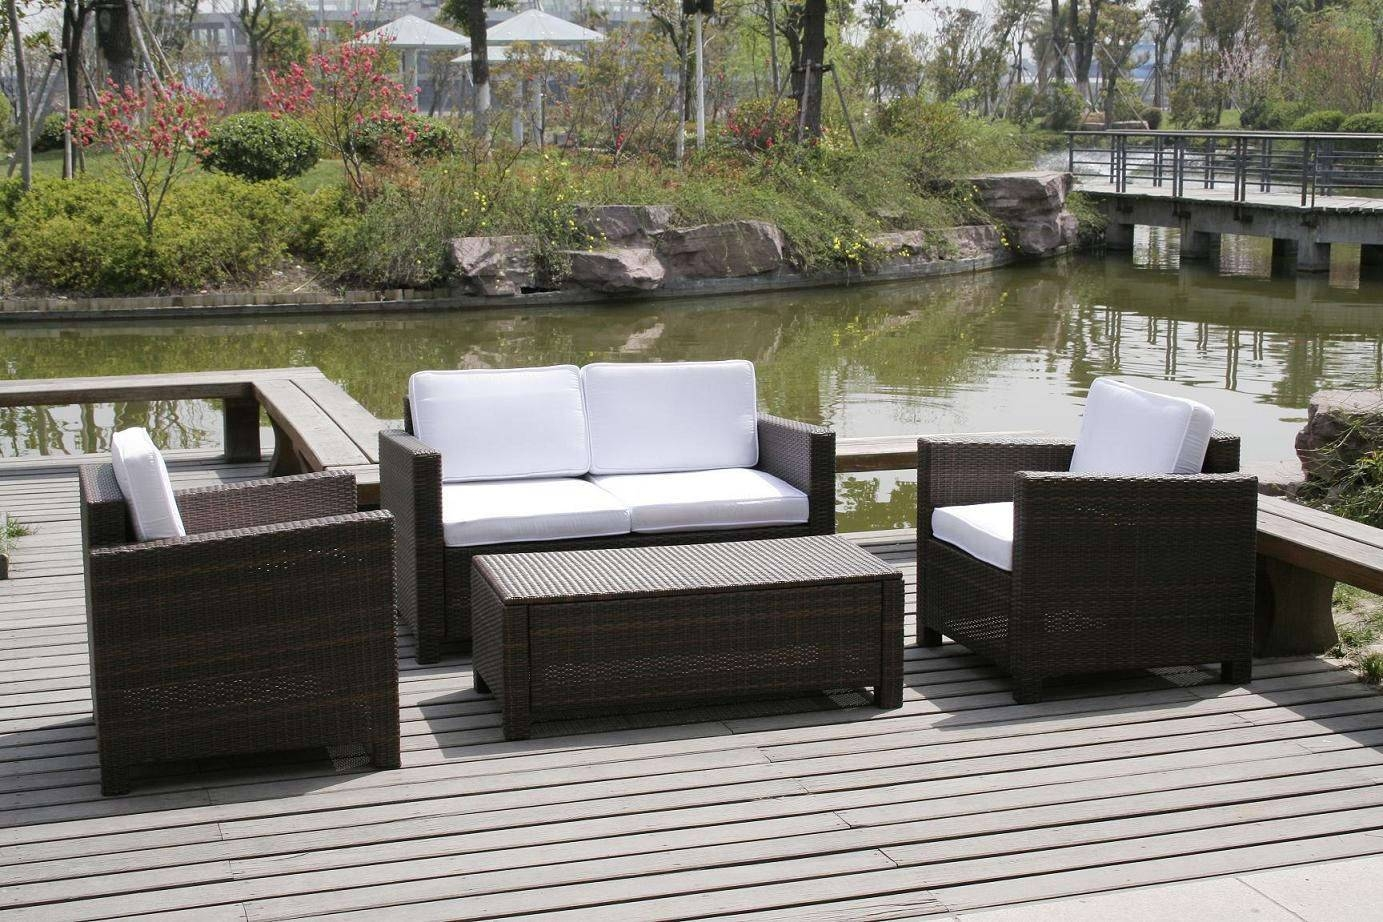 Furniture : Classic Garden Furniture With Square Wood Coffee Table within Garden Sofa Covers (Image 9 of 26)